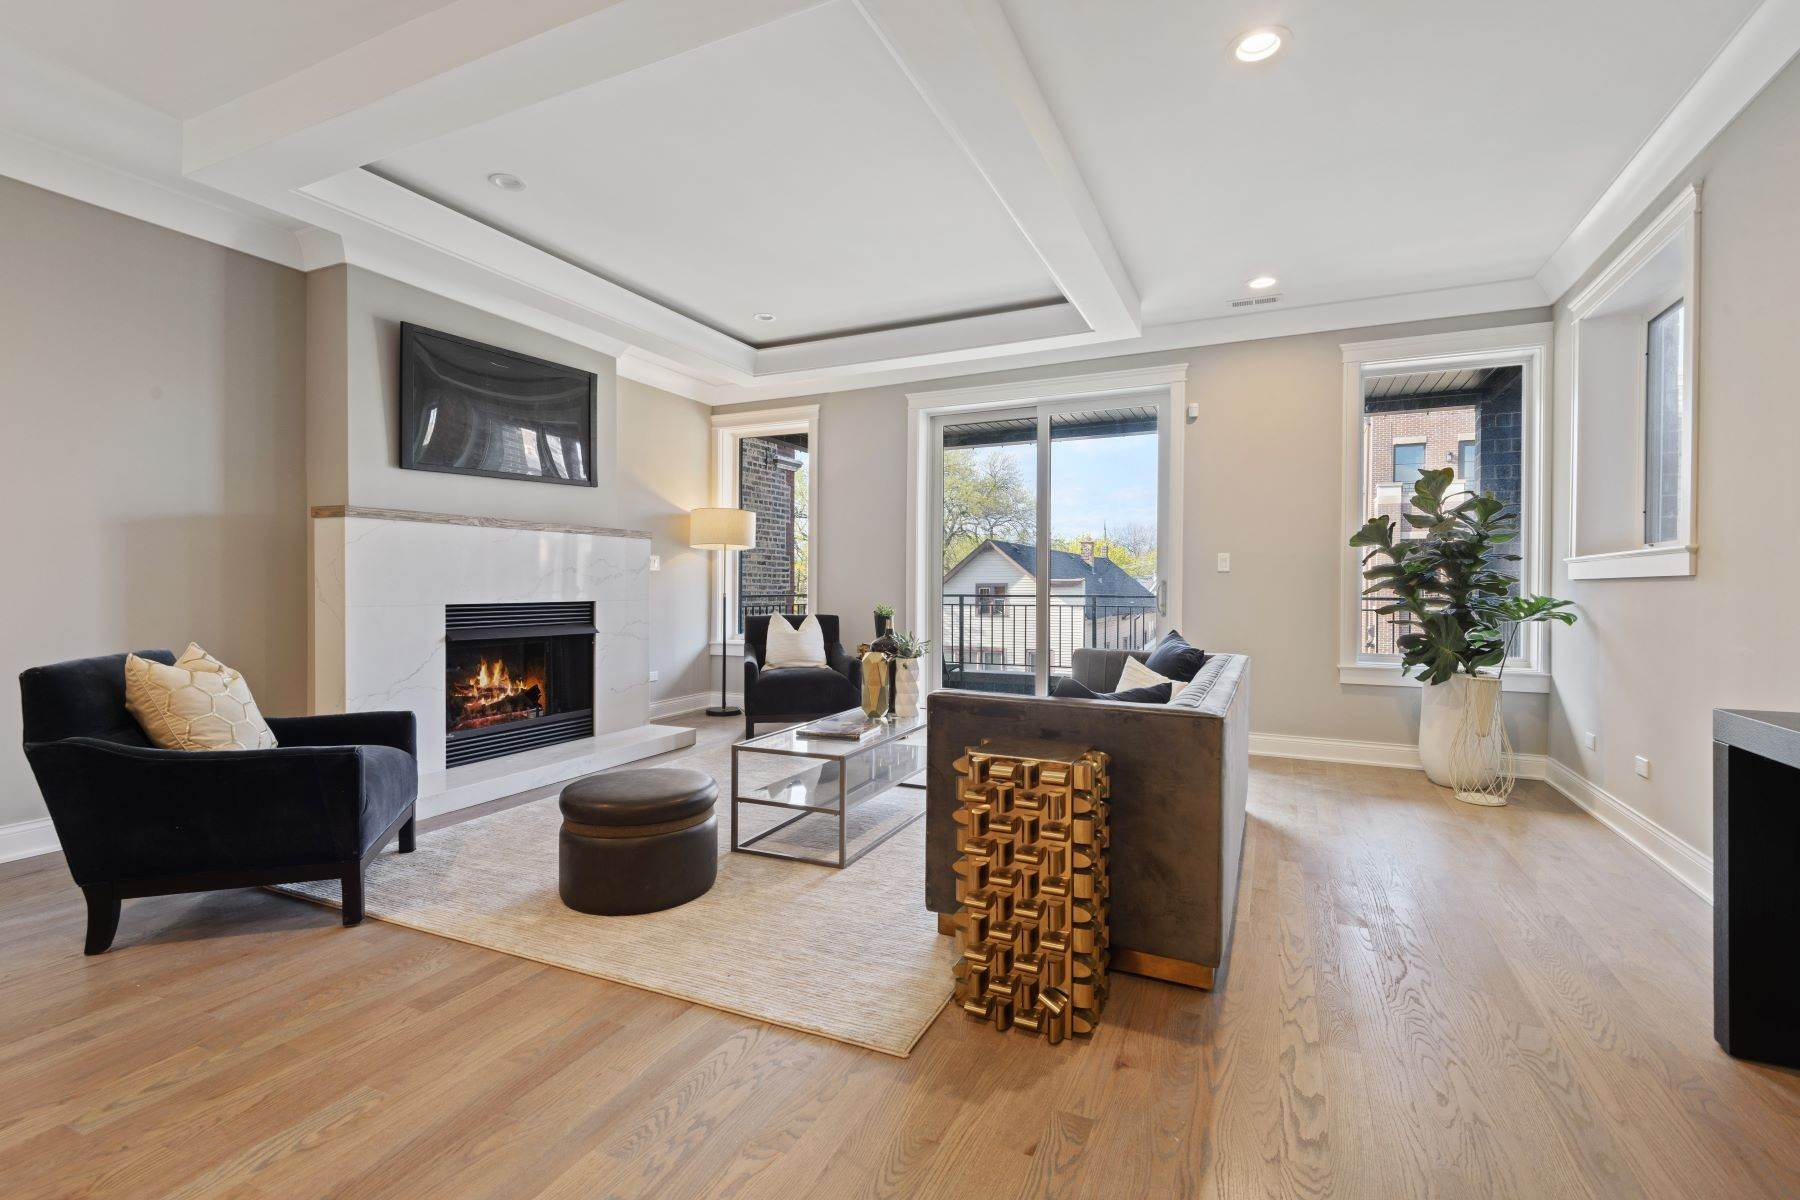 Duplex Homes for Sale at Exciting New Construction Duplex Penthouse 1323 W Wrightwood Avenue, Unit 3 Chicago, Illinois 60614 United States